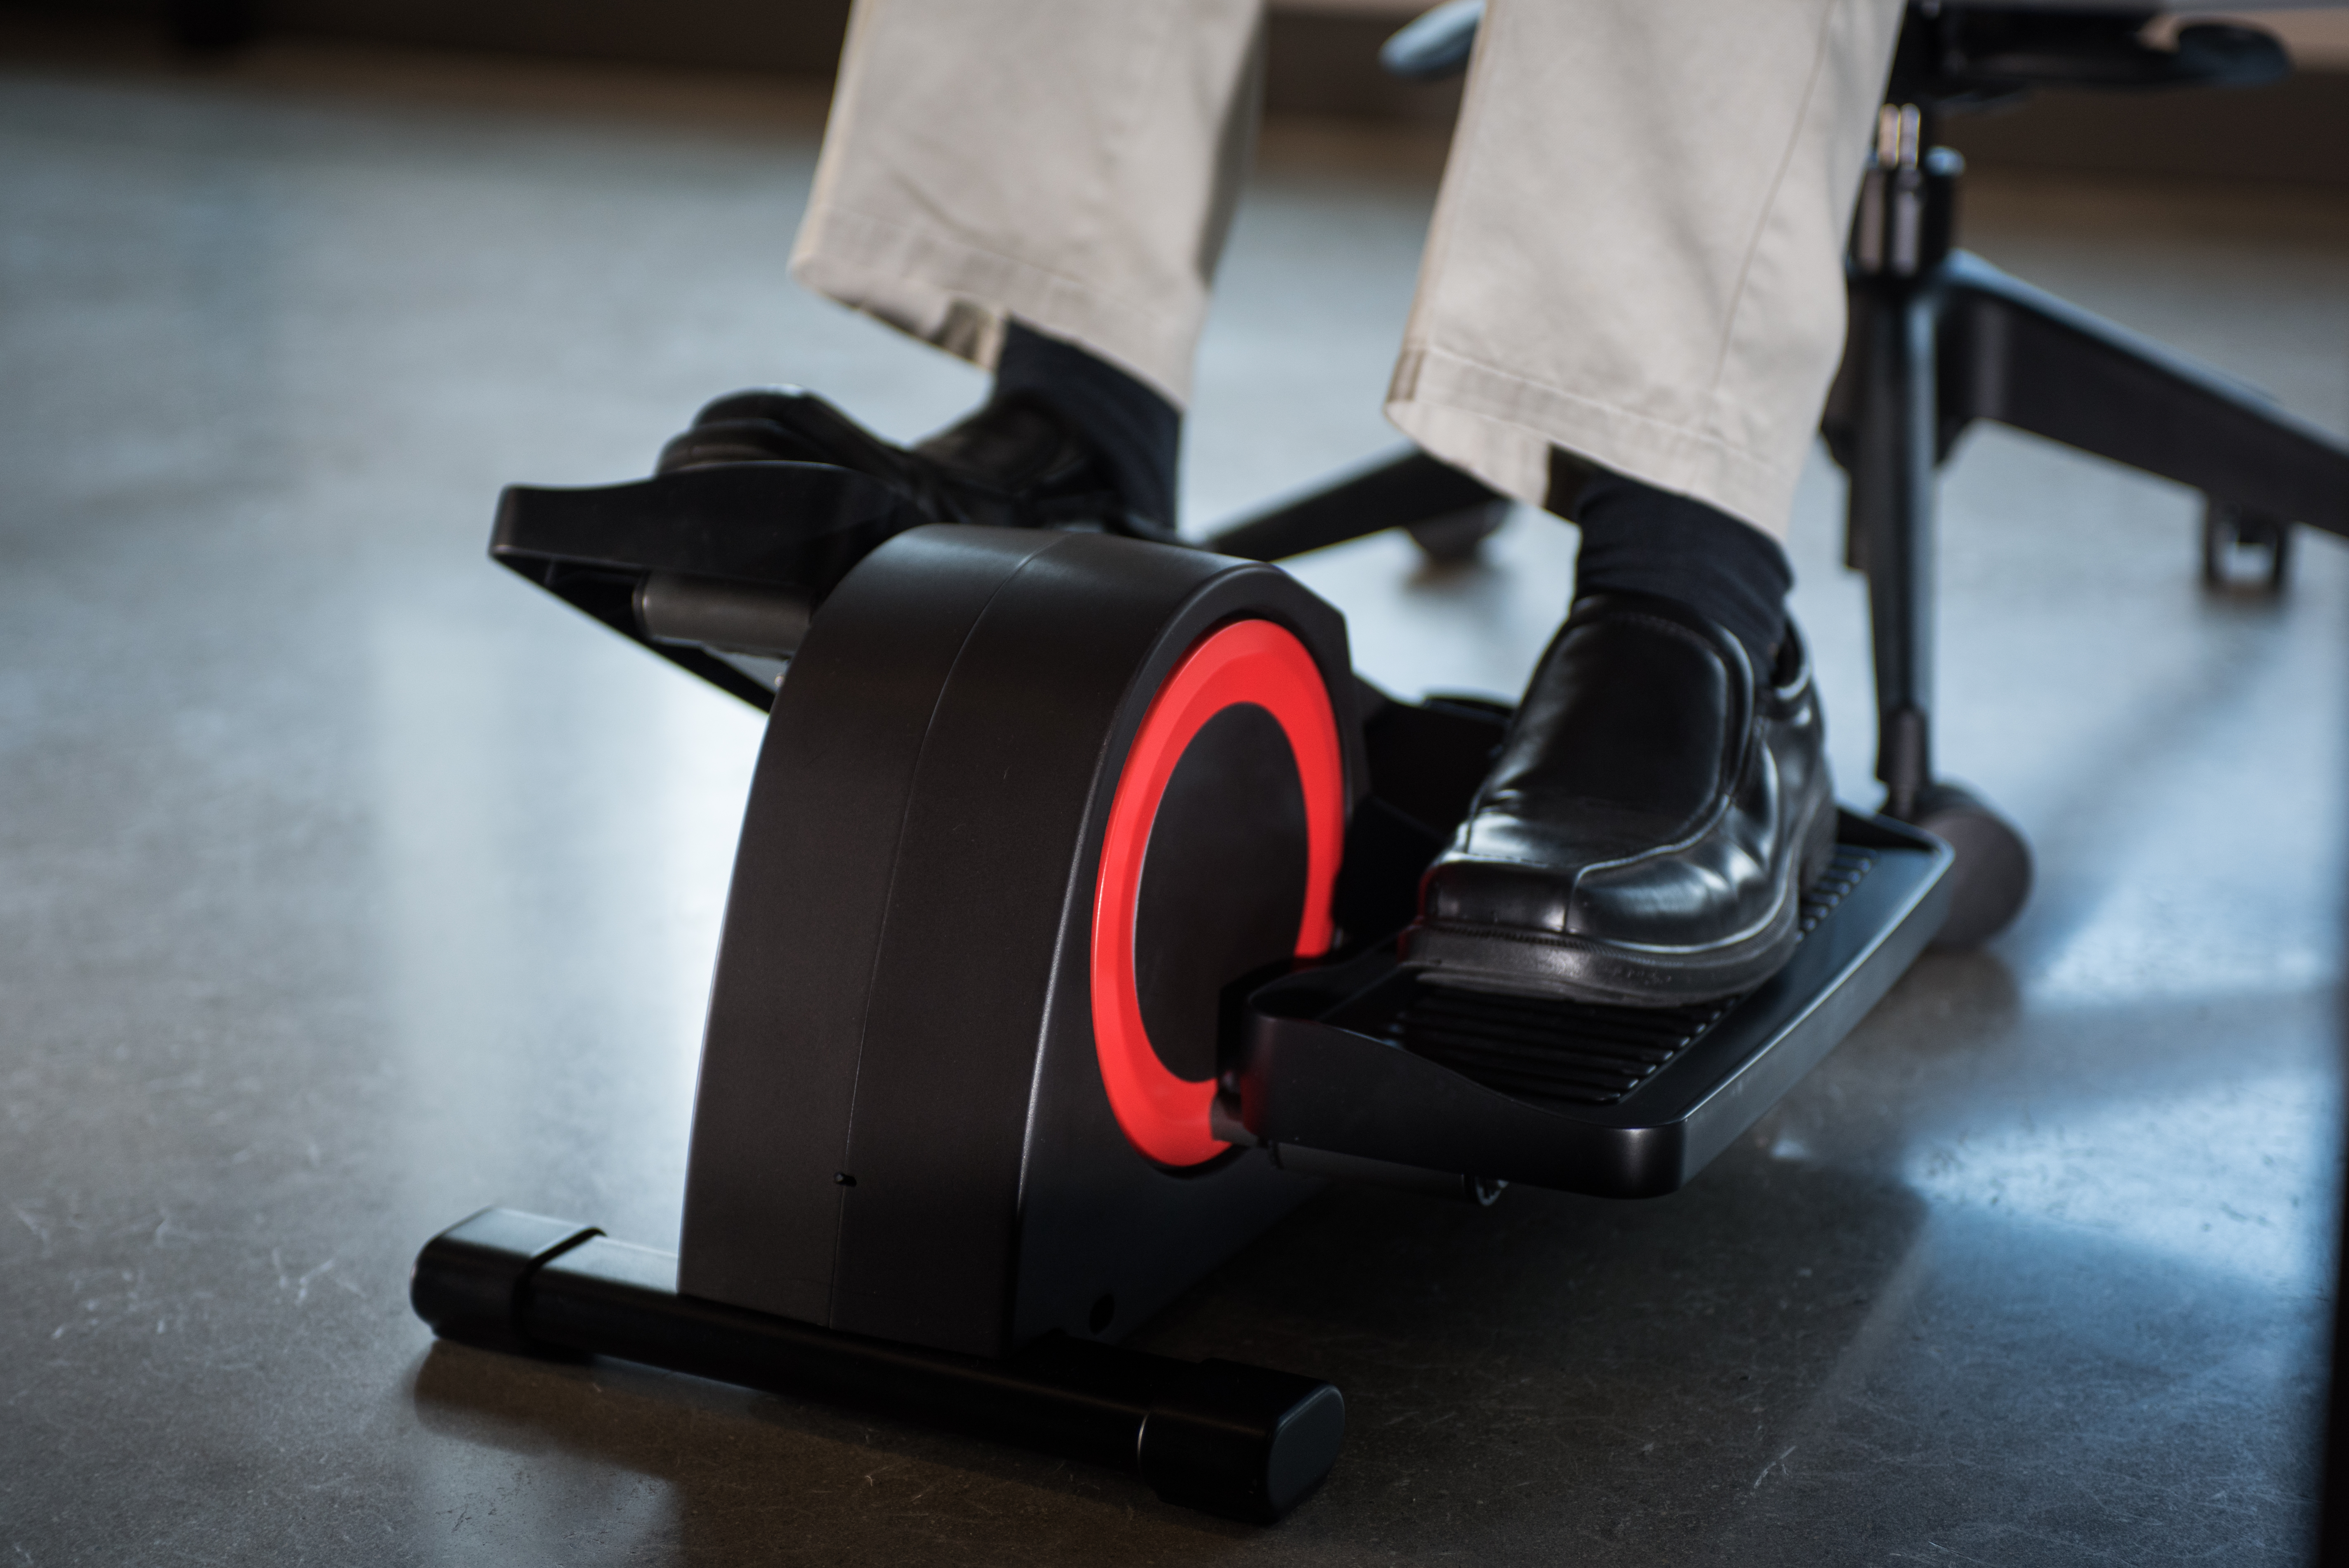 An Under Desk Elliptical So You Can Workout While You Work